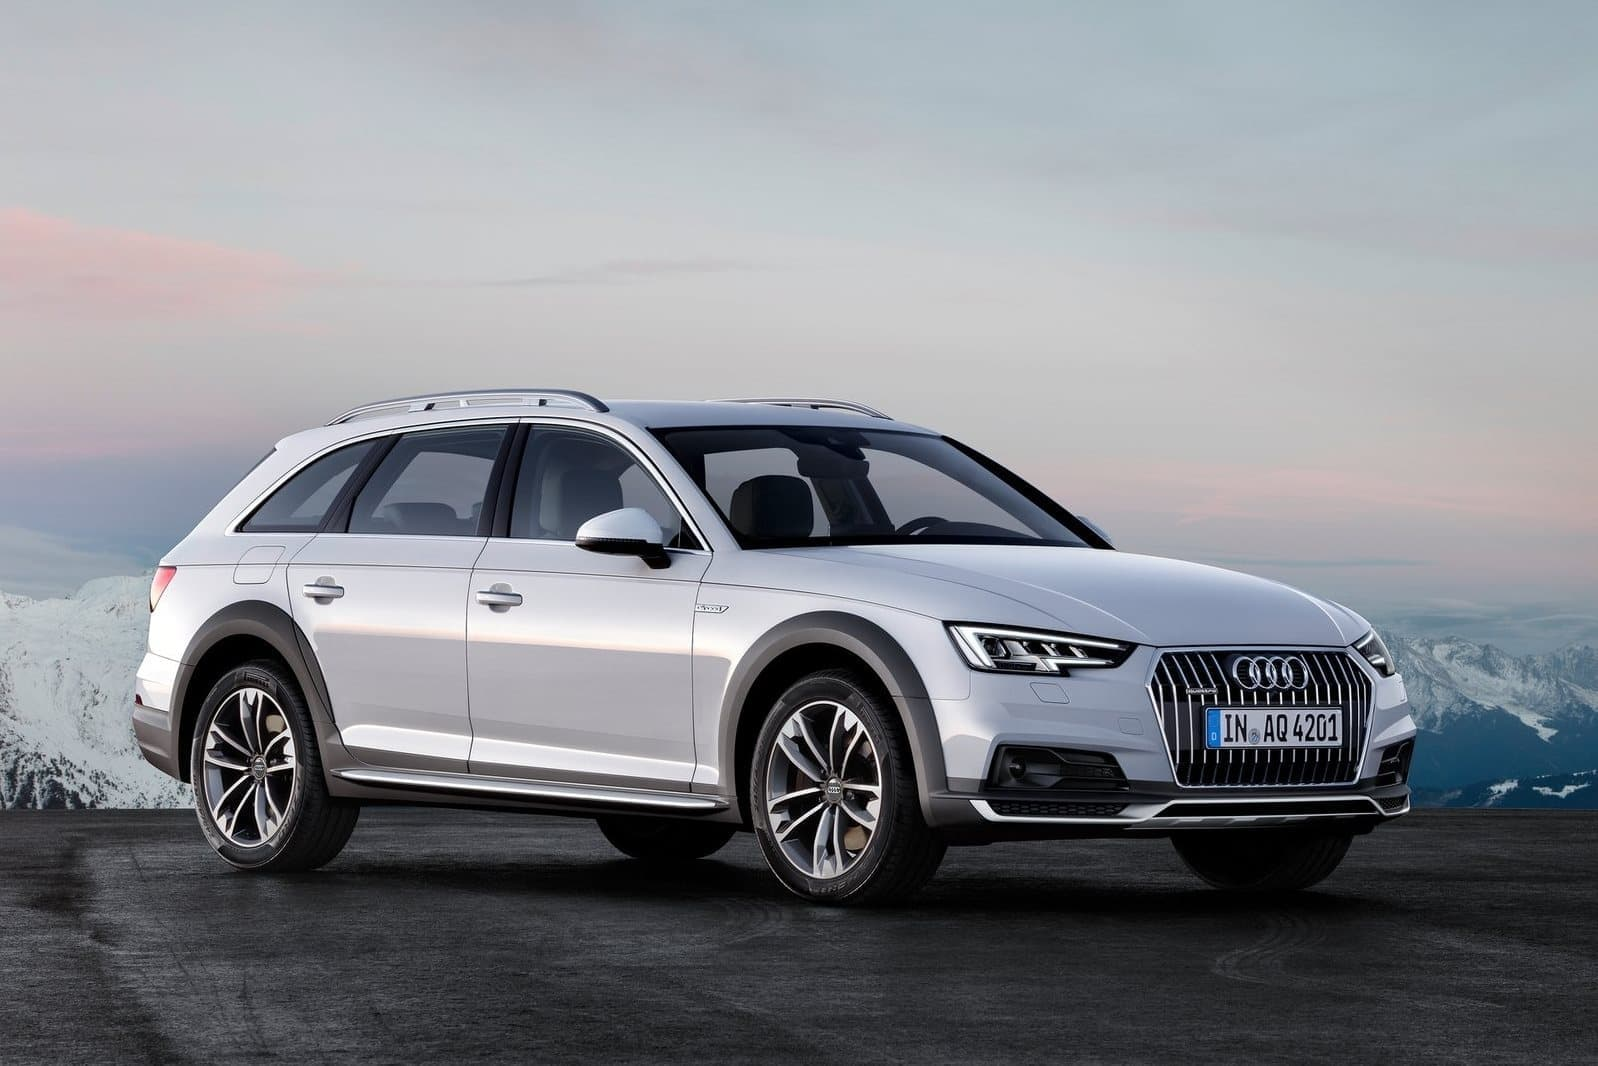 2017 Audi A6 allroad computer wallpaper